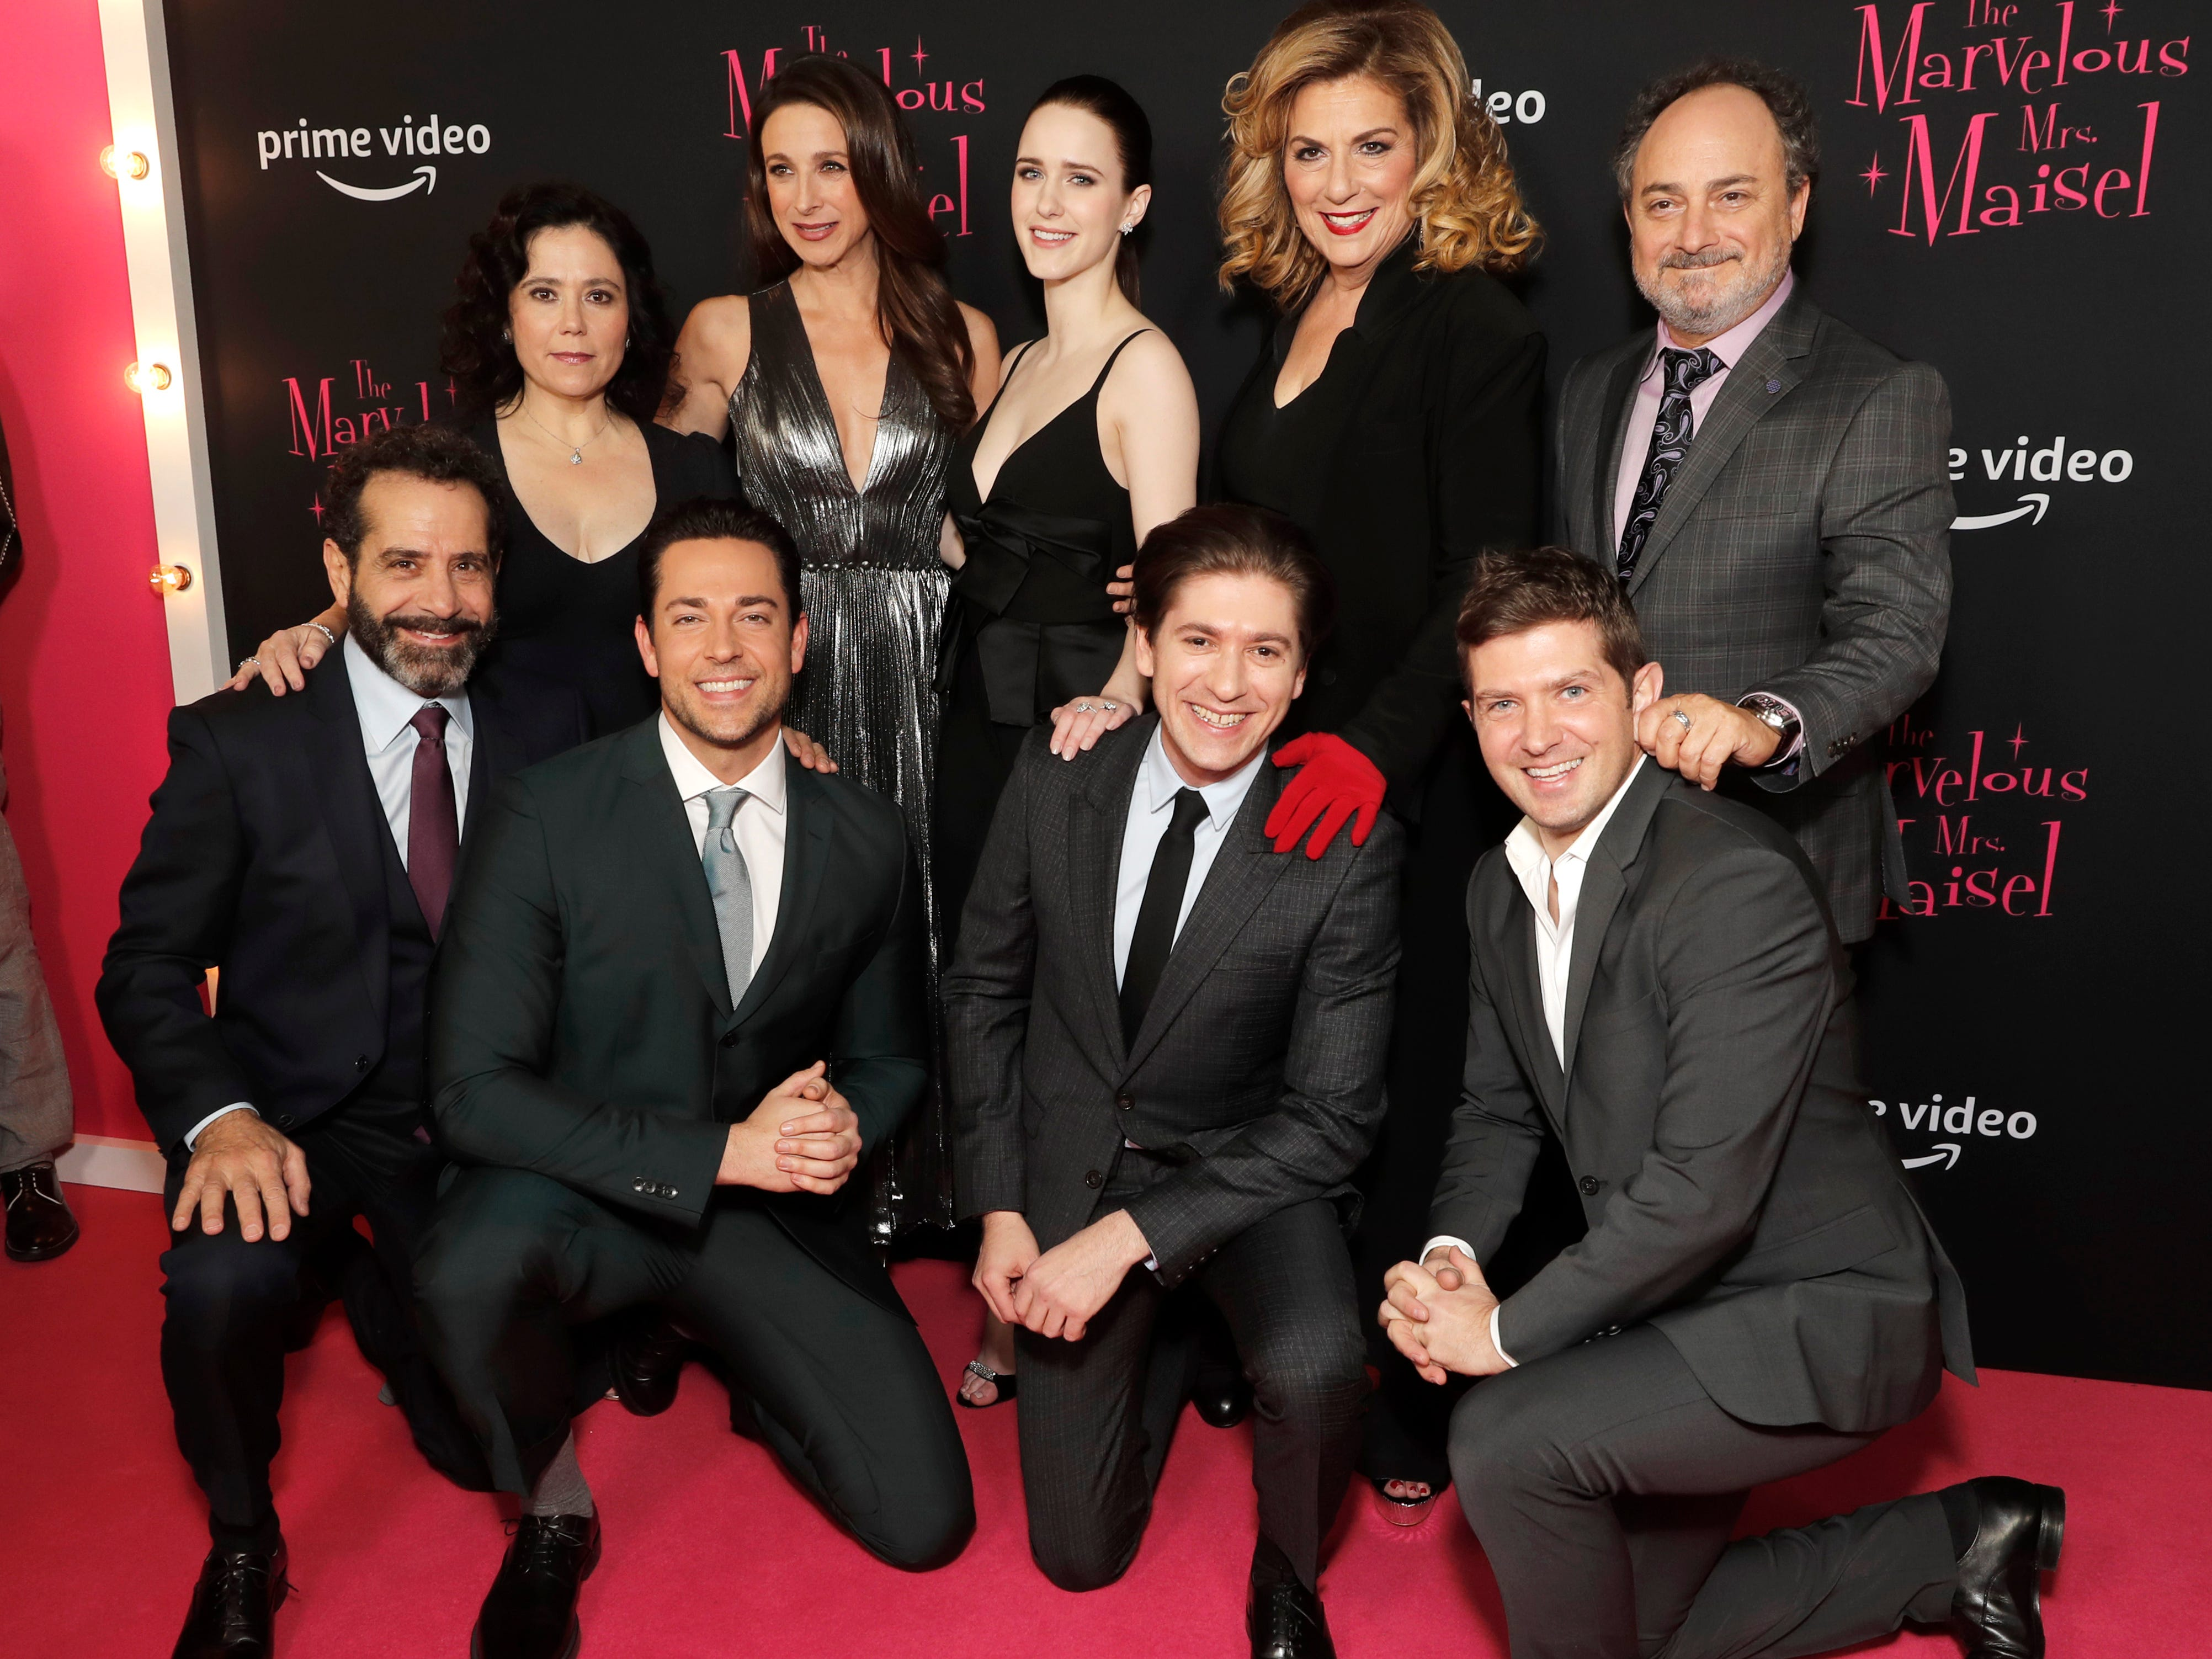 "Tony Shalhoub, Zachary Levi, Michael Zegen, Joel Johnstone, Alex Borstein, Marin Hinkle, Rachel Brosnahan, Caroline Aaron and Kevin Pollak at the premiere of season two of ""The Marvelous Mrs. Maisel"" Nov. 29, 2018 at The Paris Theatre in New York City."